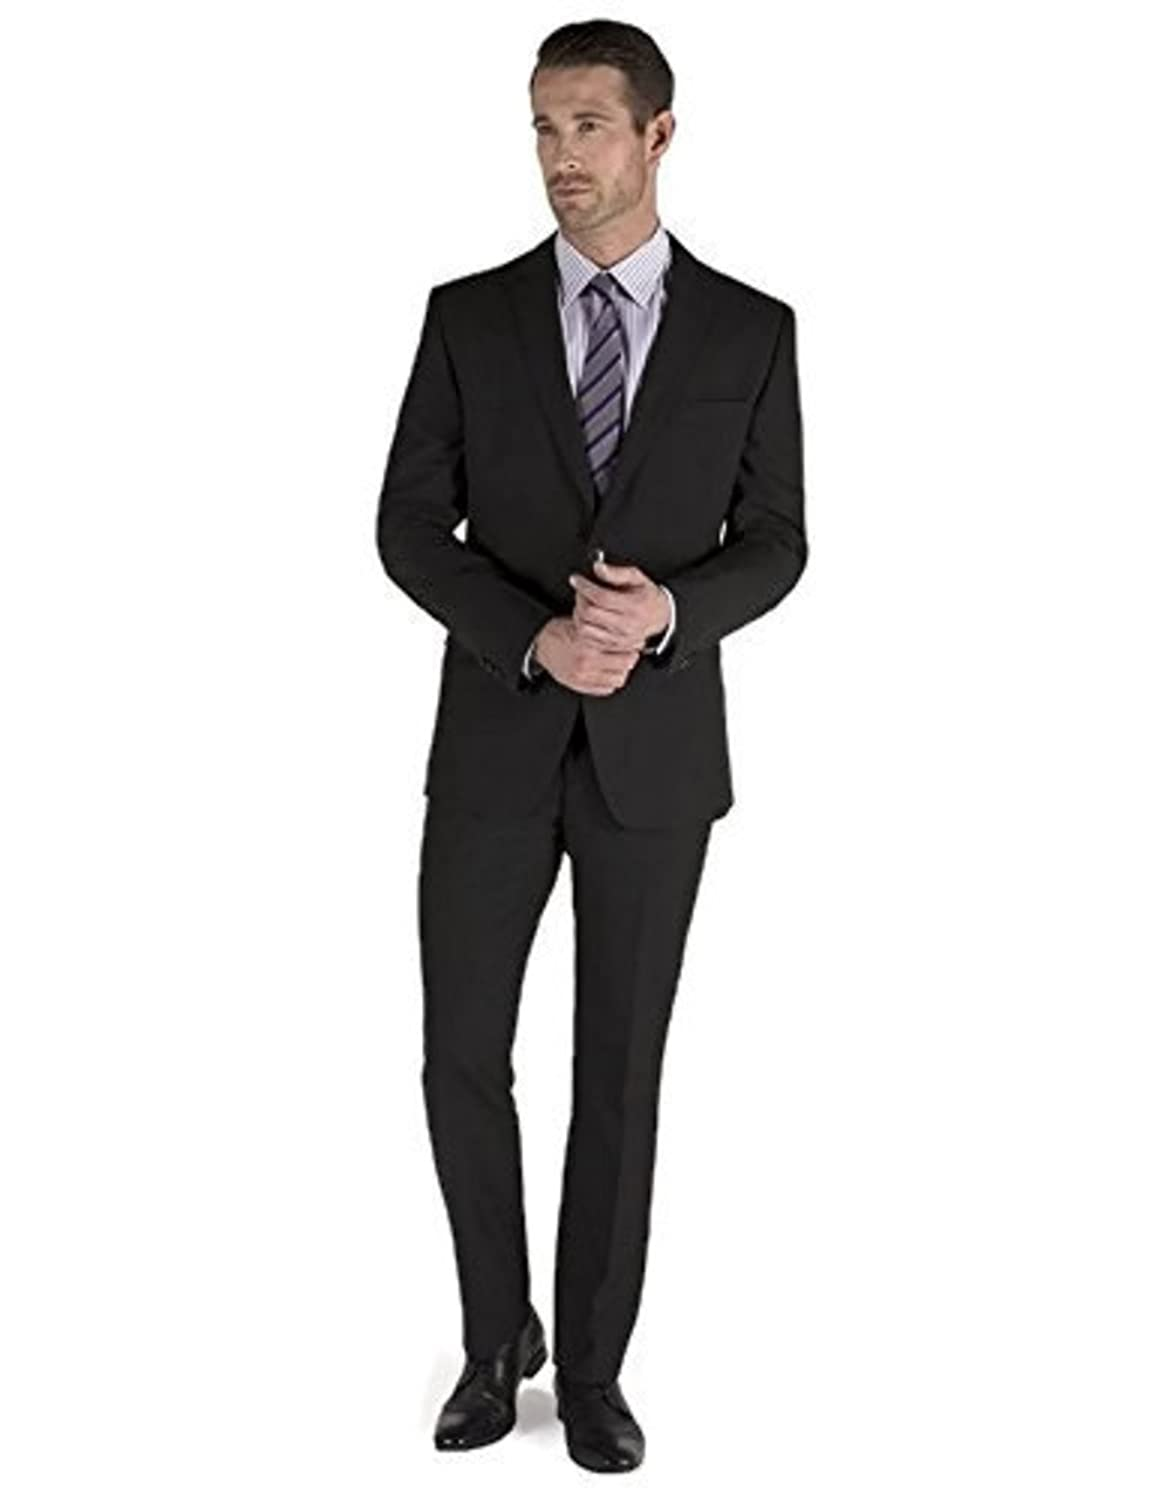 Clothing Connection Online Cheap Suits For Men